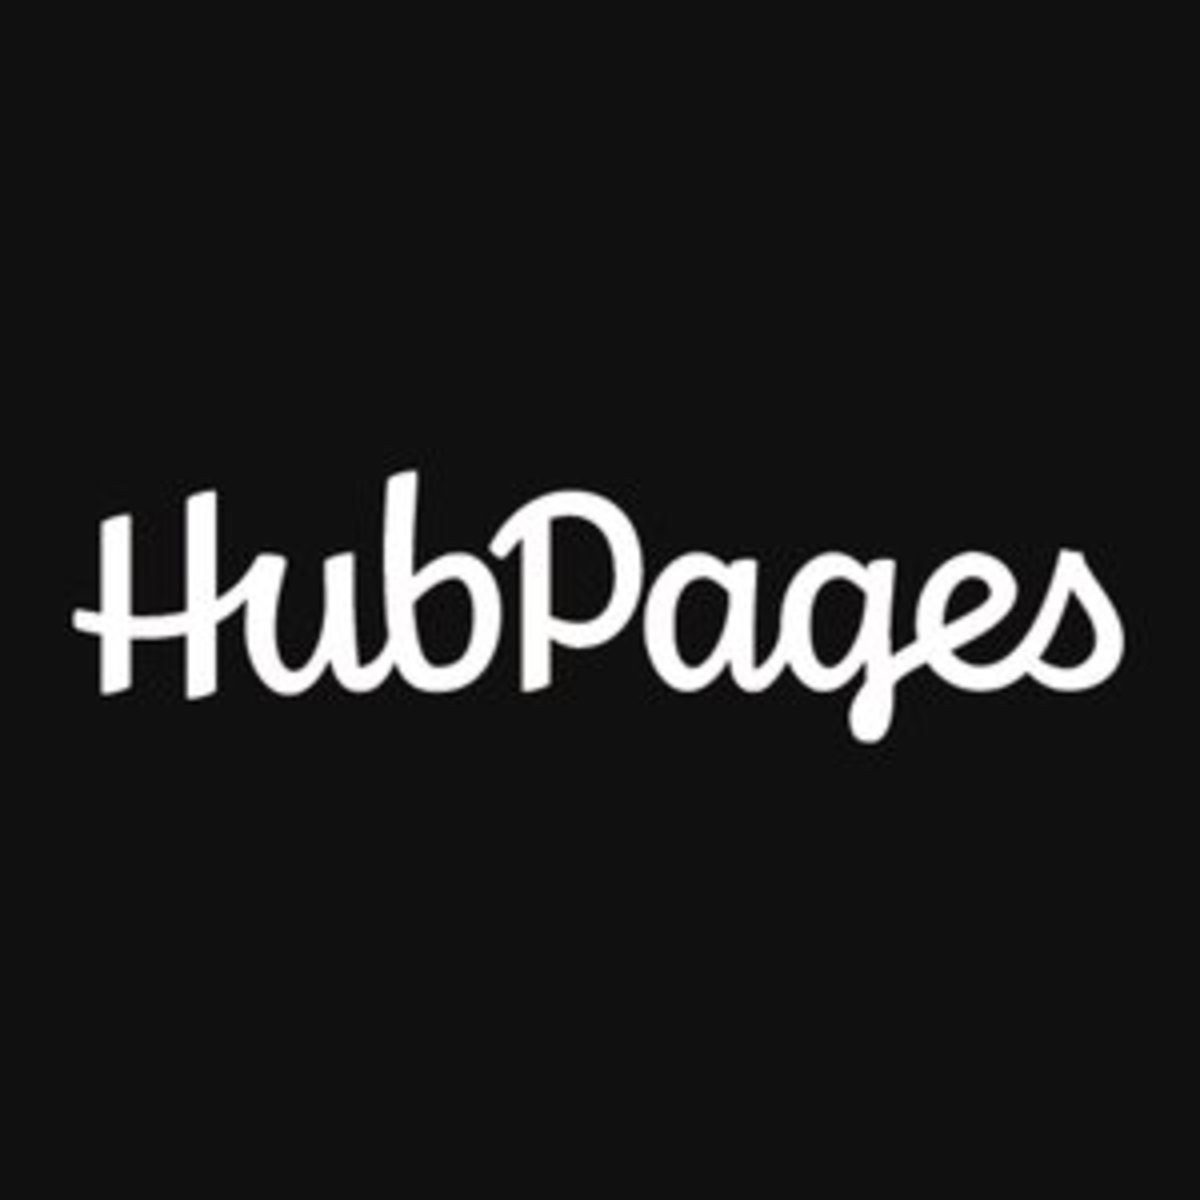 A Tribute To My Favorite Hub Pages Writers